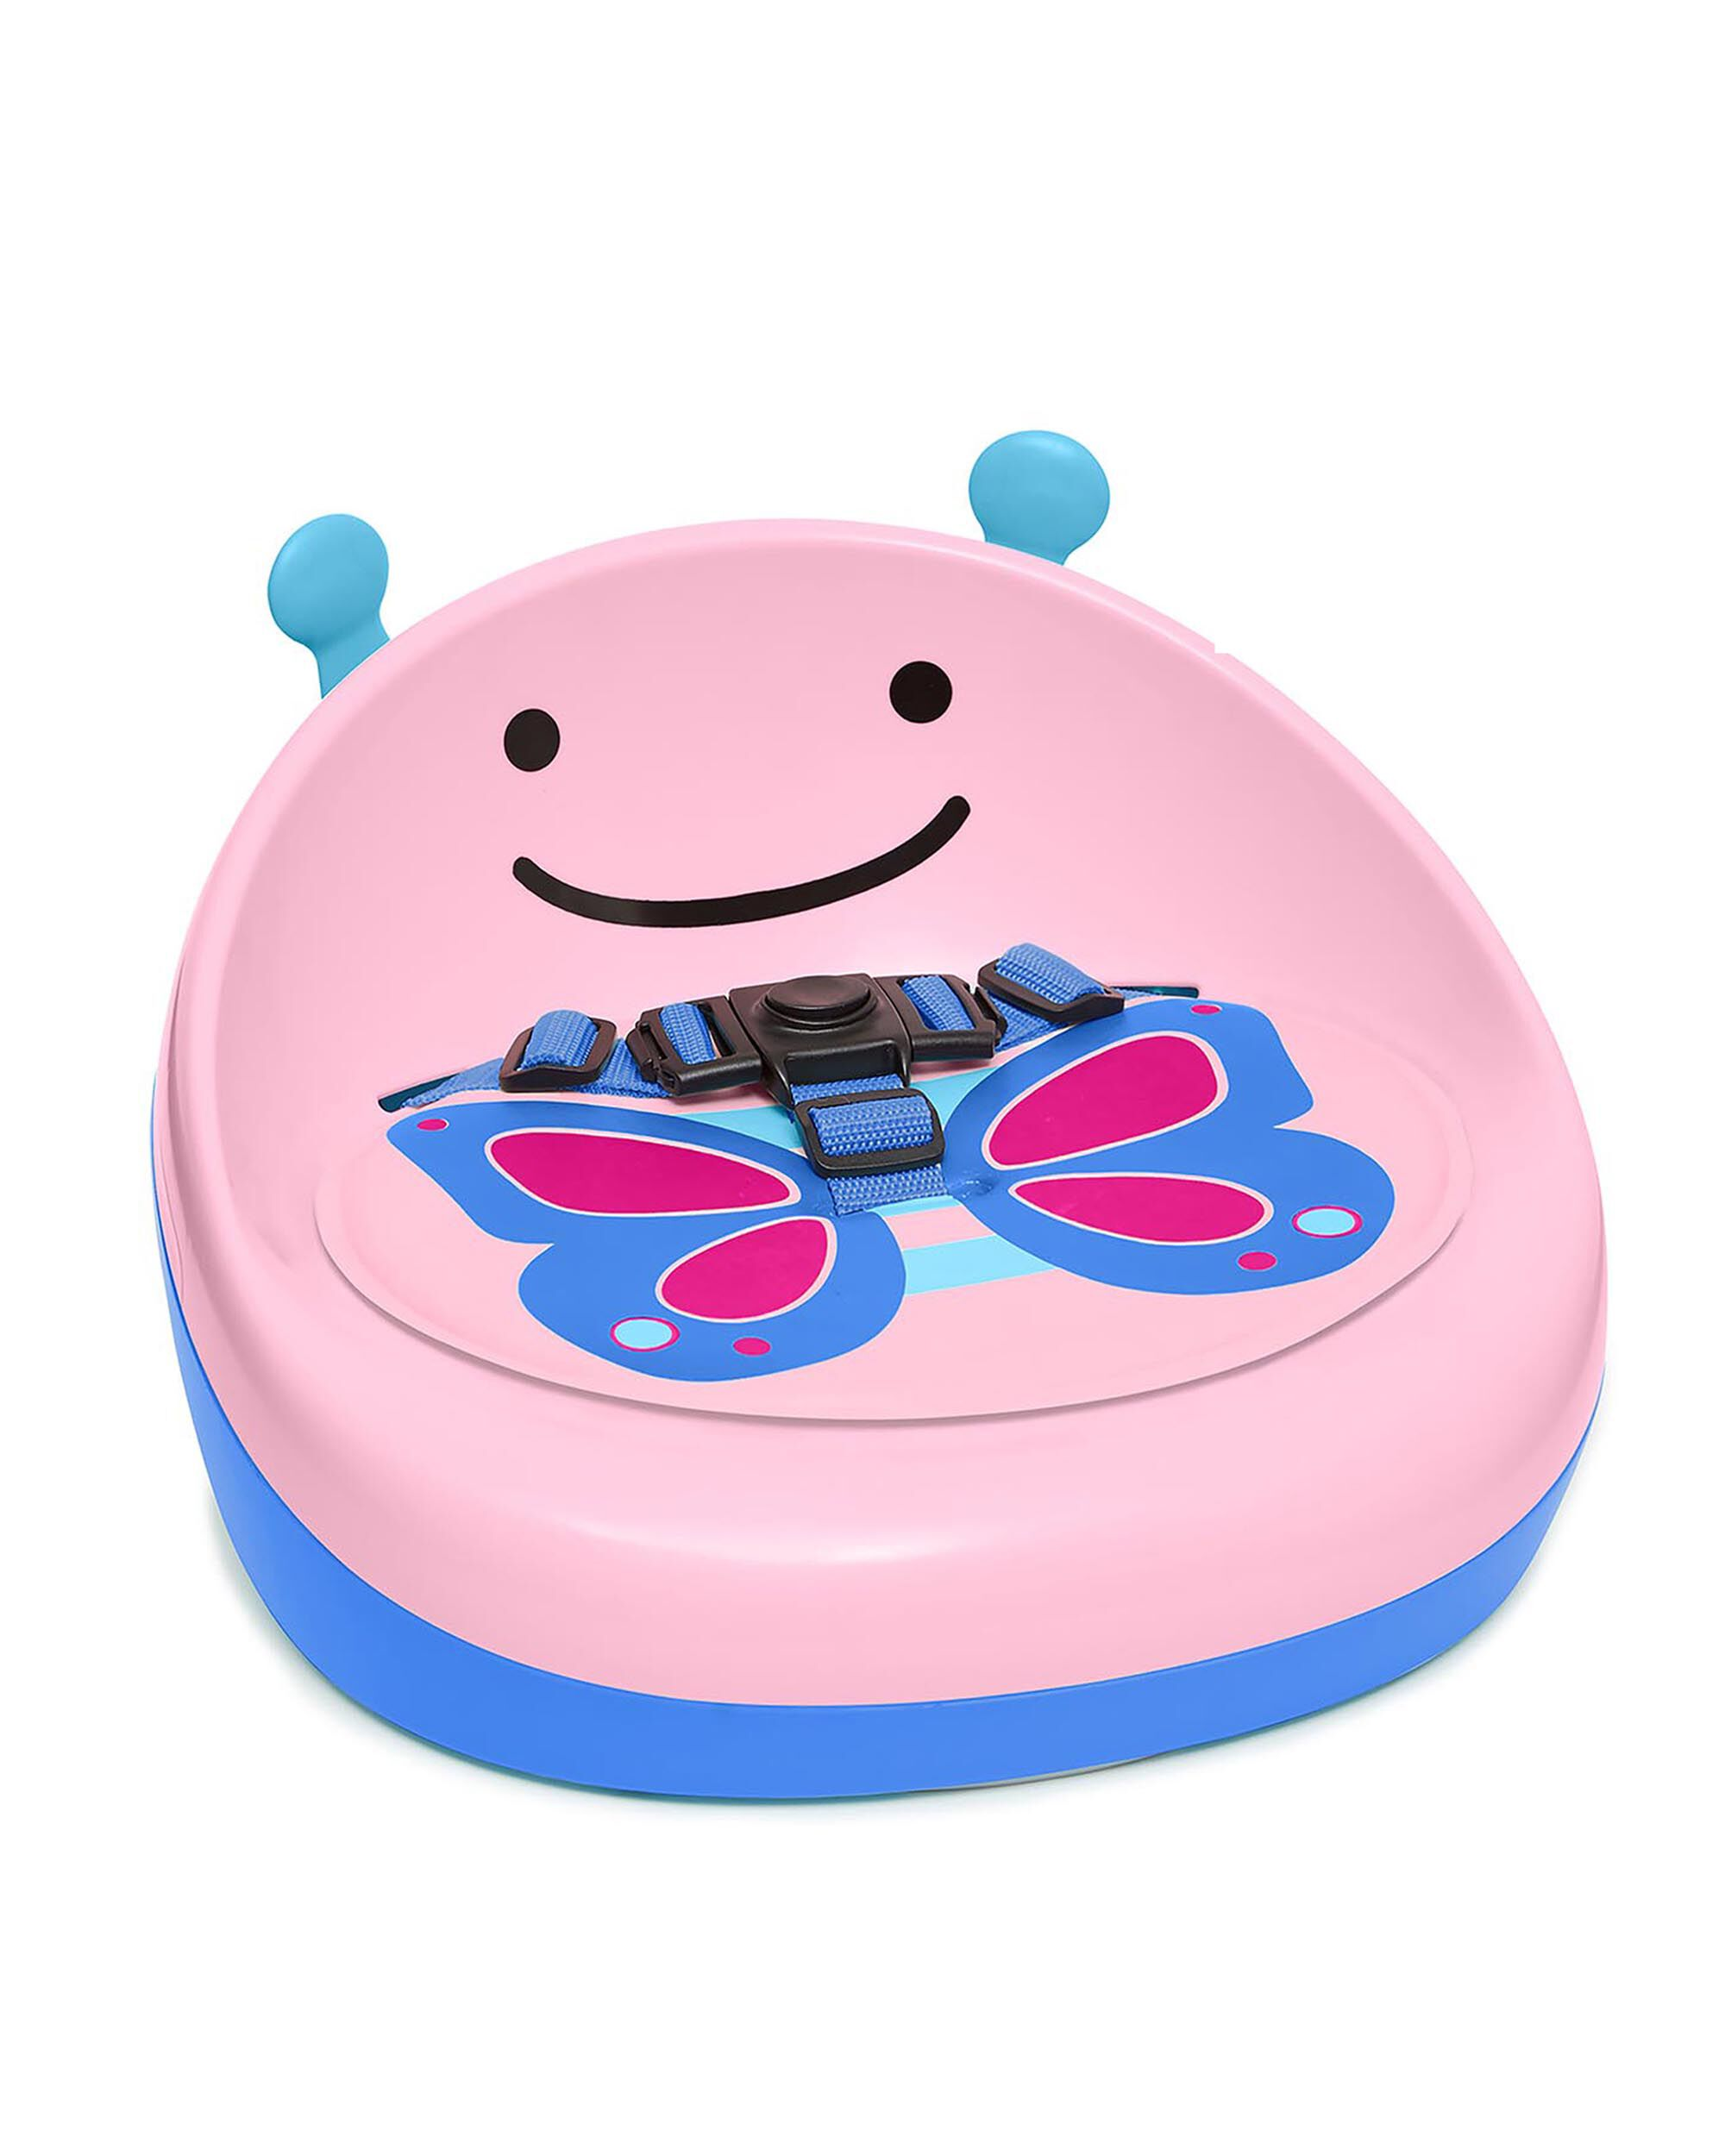 booster seat high chair design egg convertible chairs skip hop free shipping seats